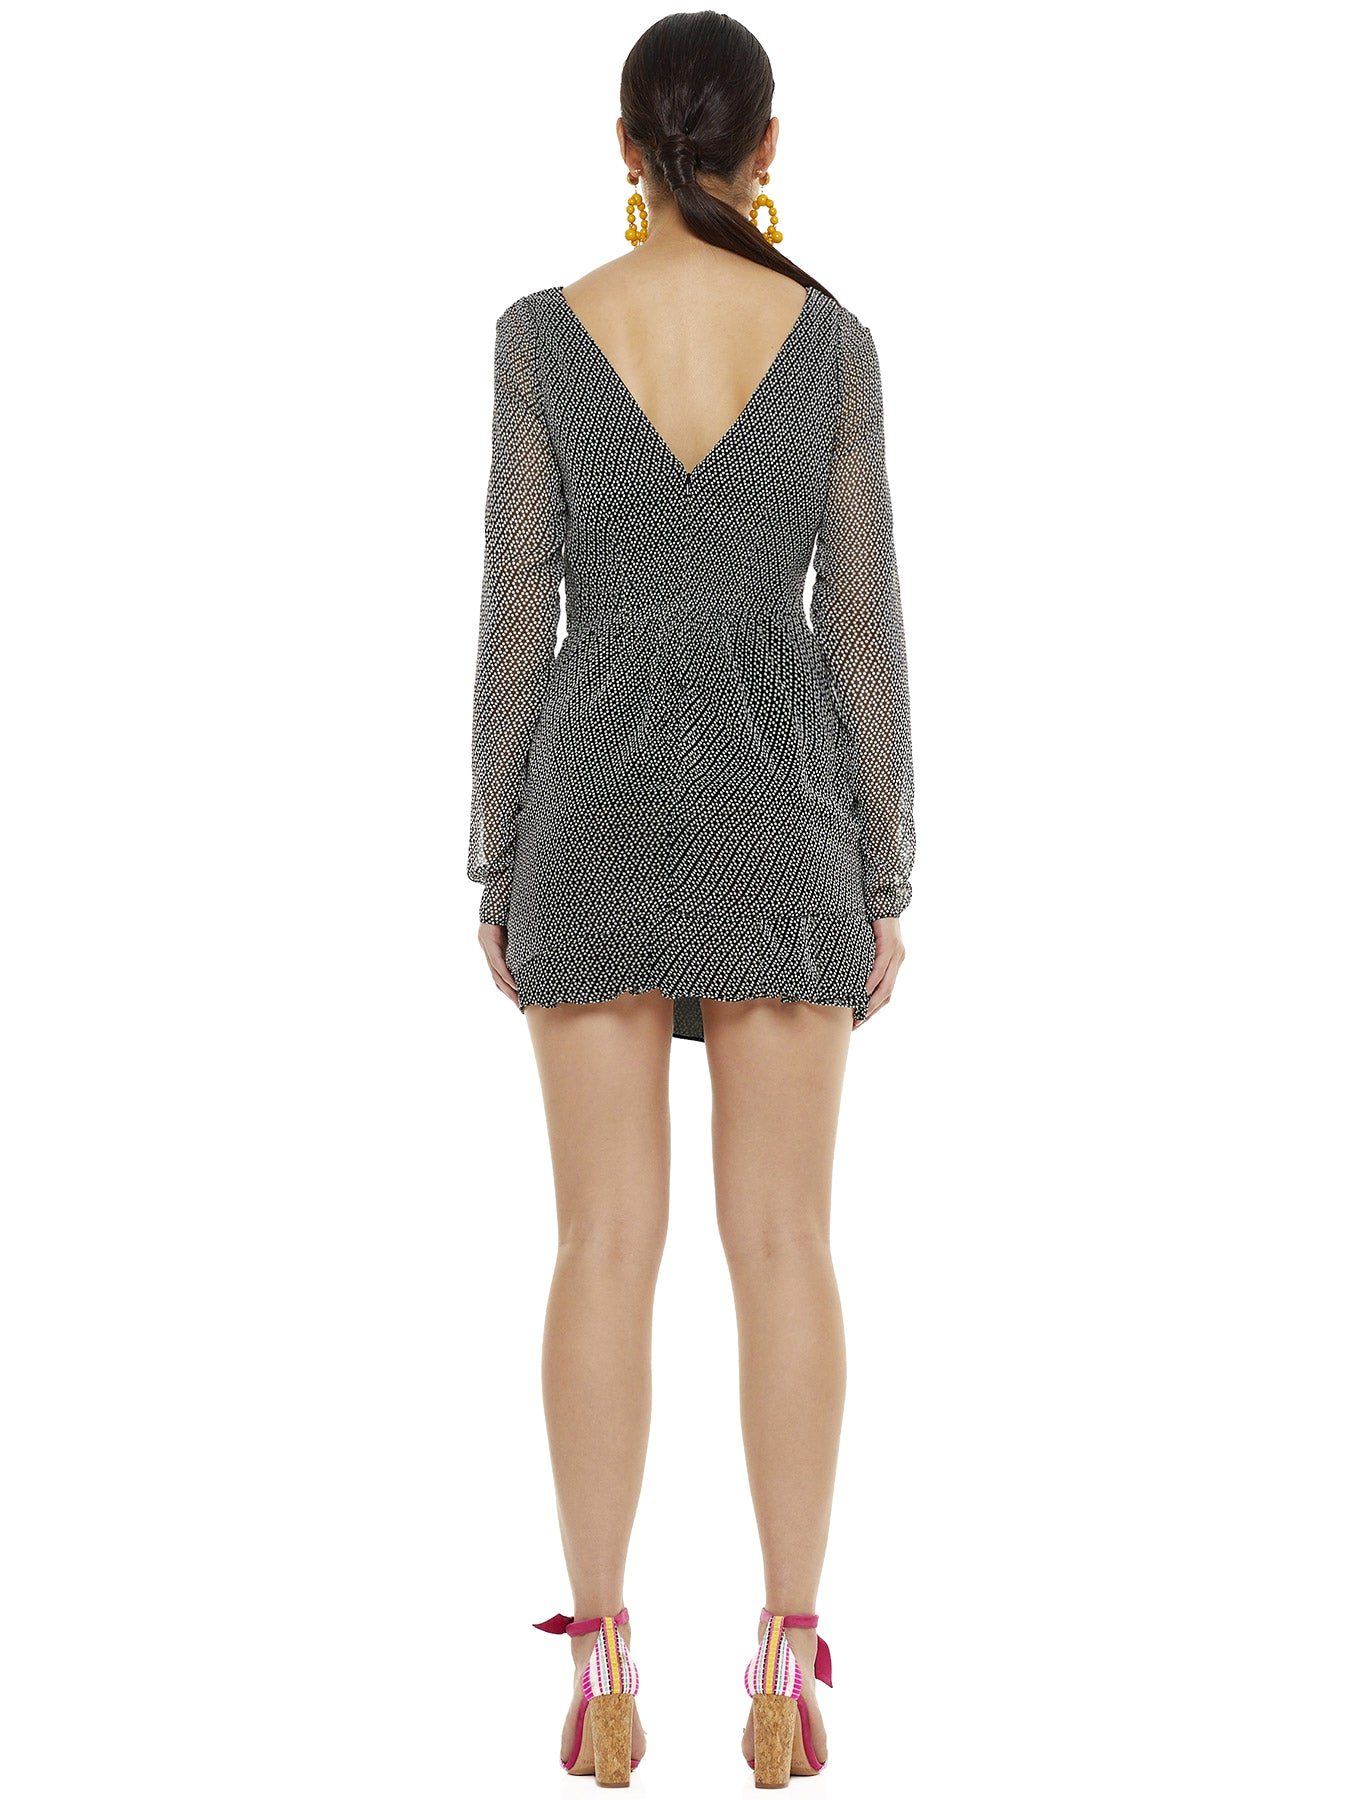 VISIONARY LS MINI DRESS